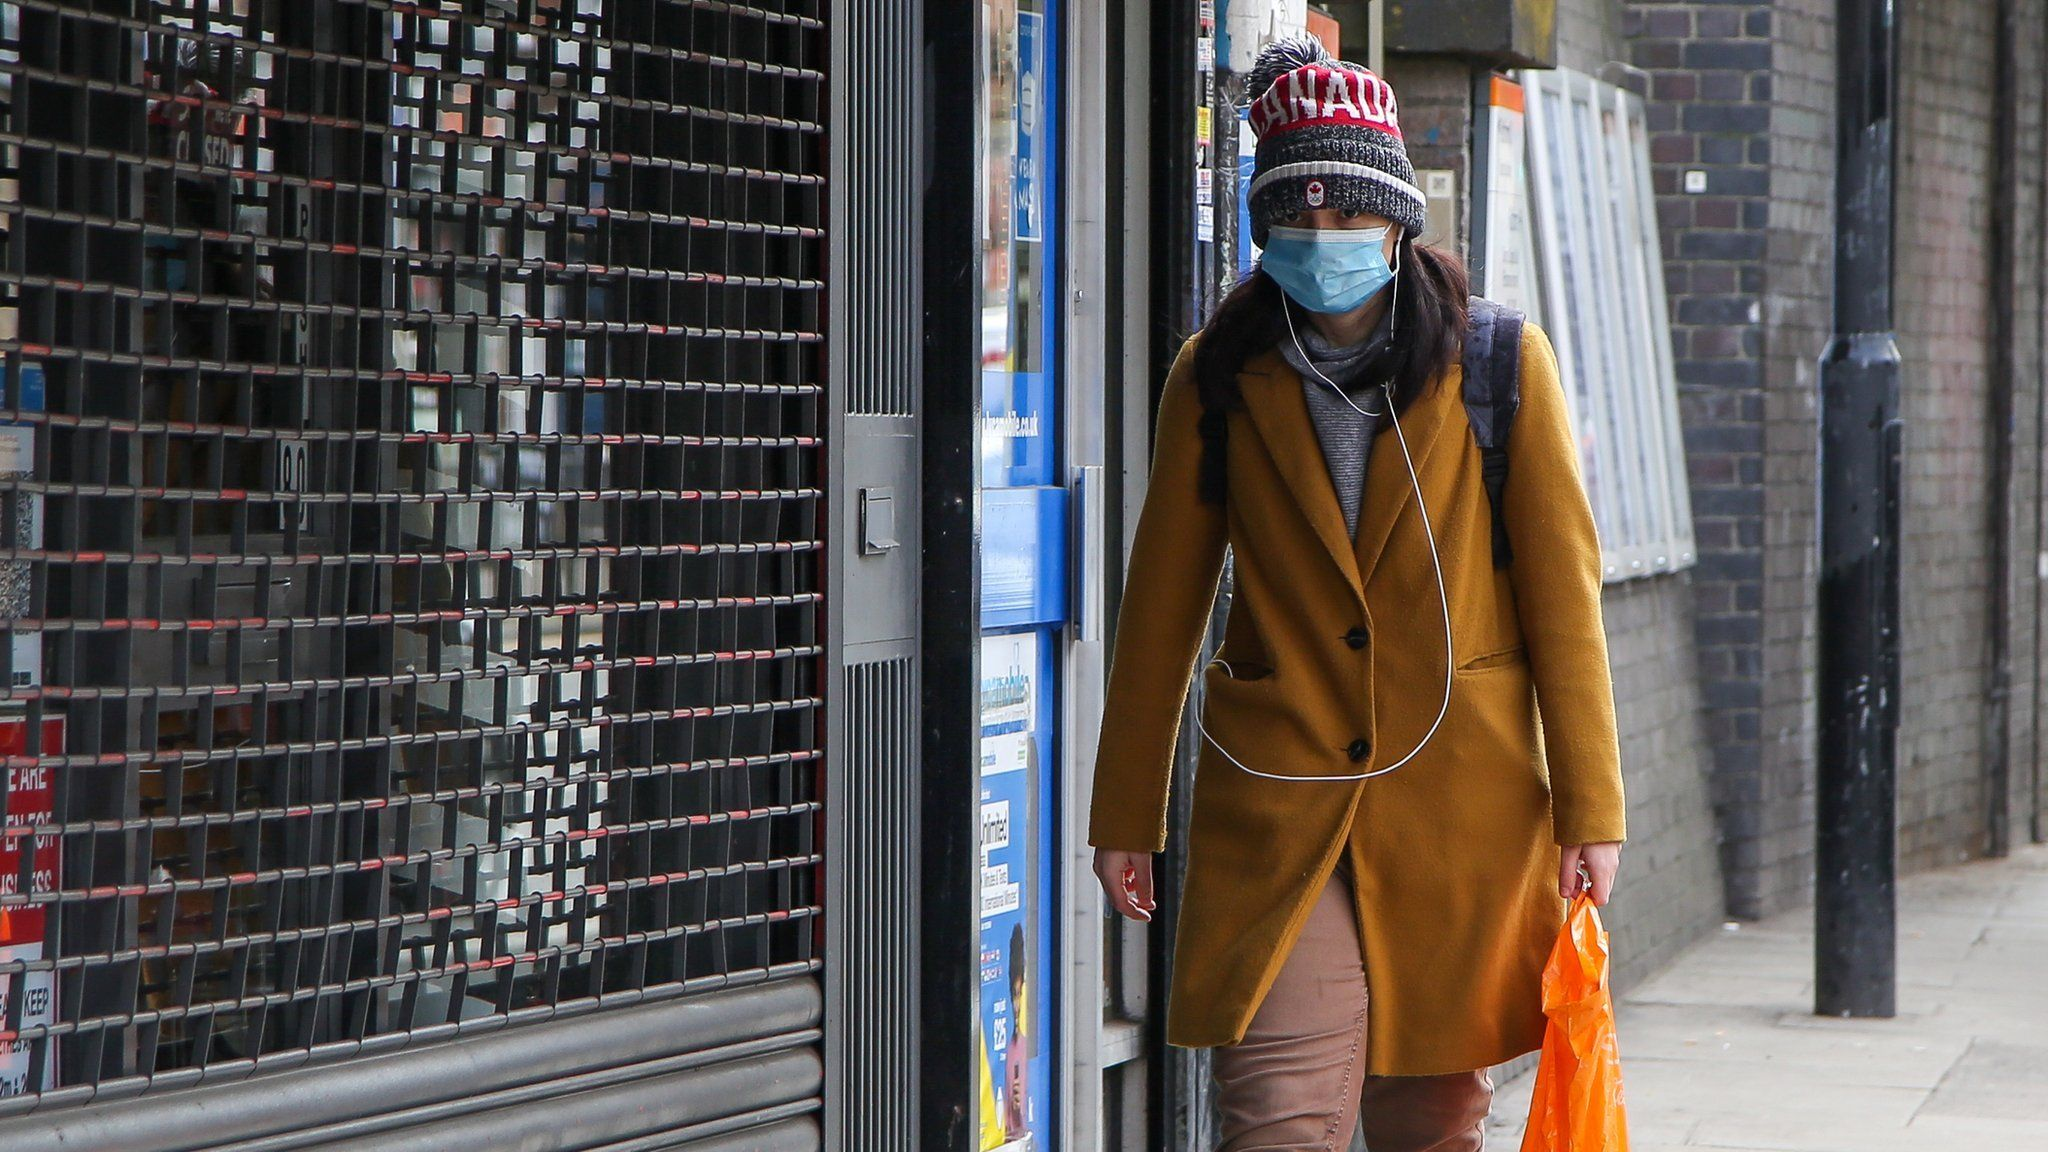 A woman wears a face covering while walking down a street in London